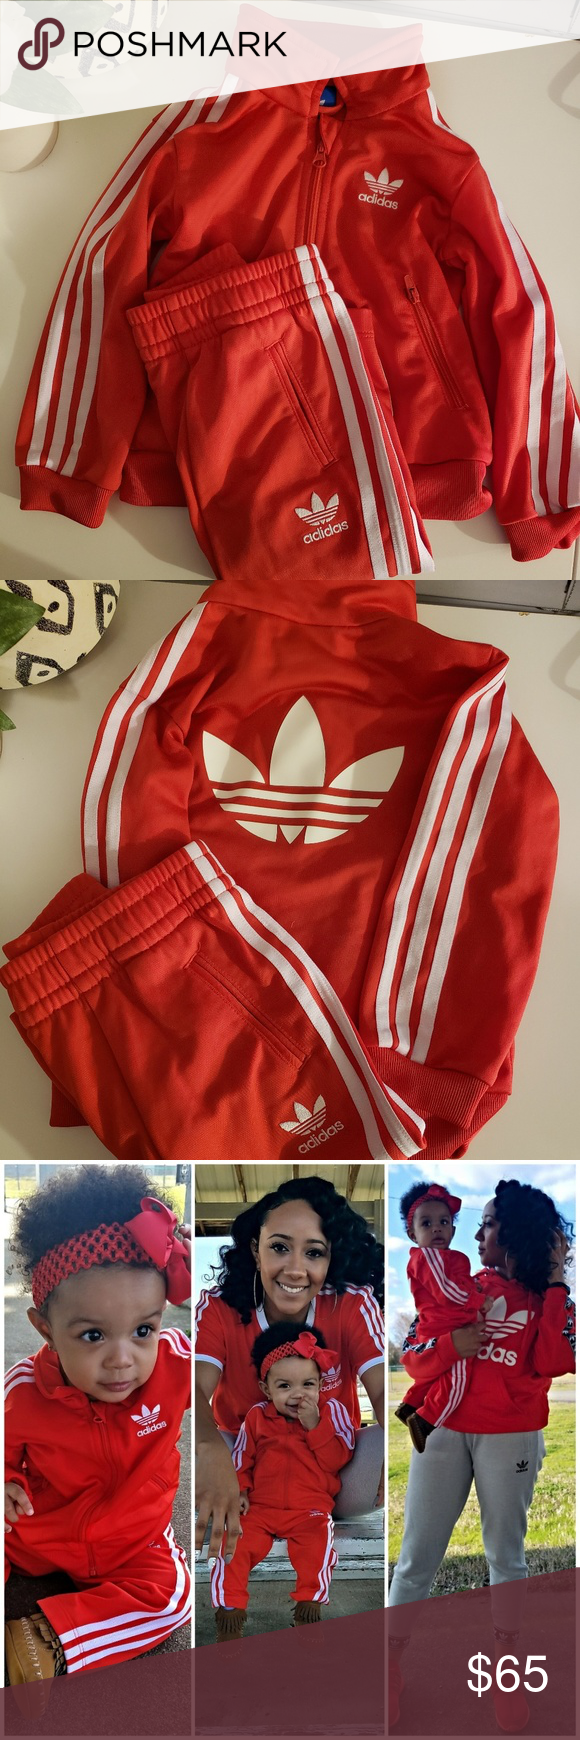 e87a94e5 Infant Adidas Originals Tracksuit The Brand With 3 Stripes. The Classic  Adidas Originals tracksuit,